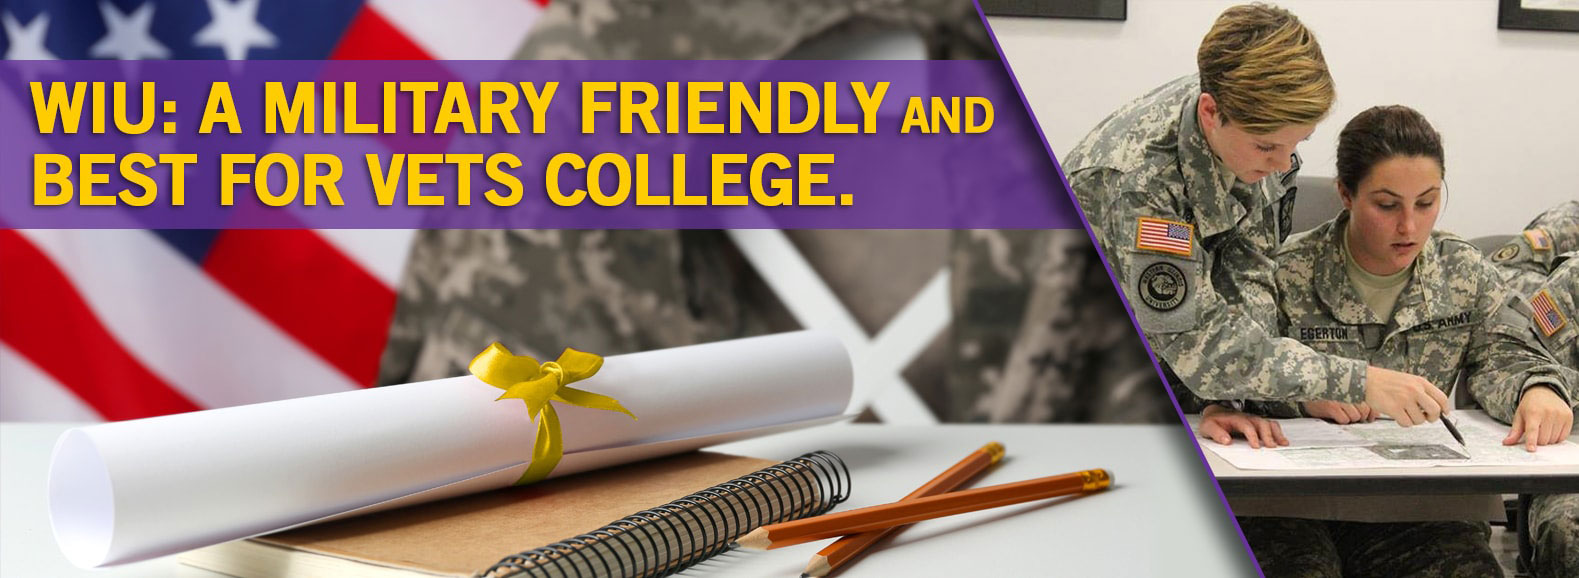 WIU: A Military Friendly and Best for Vets College.